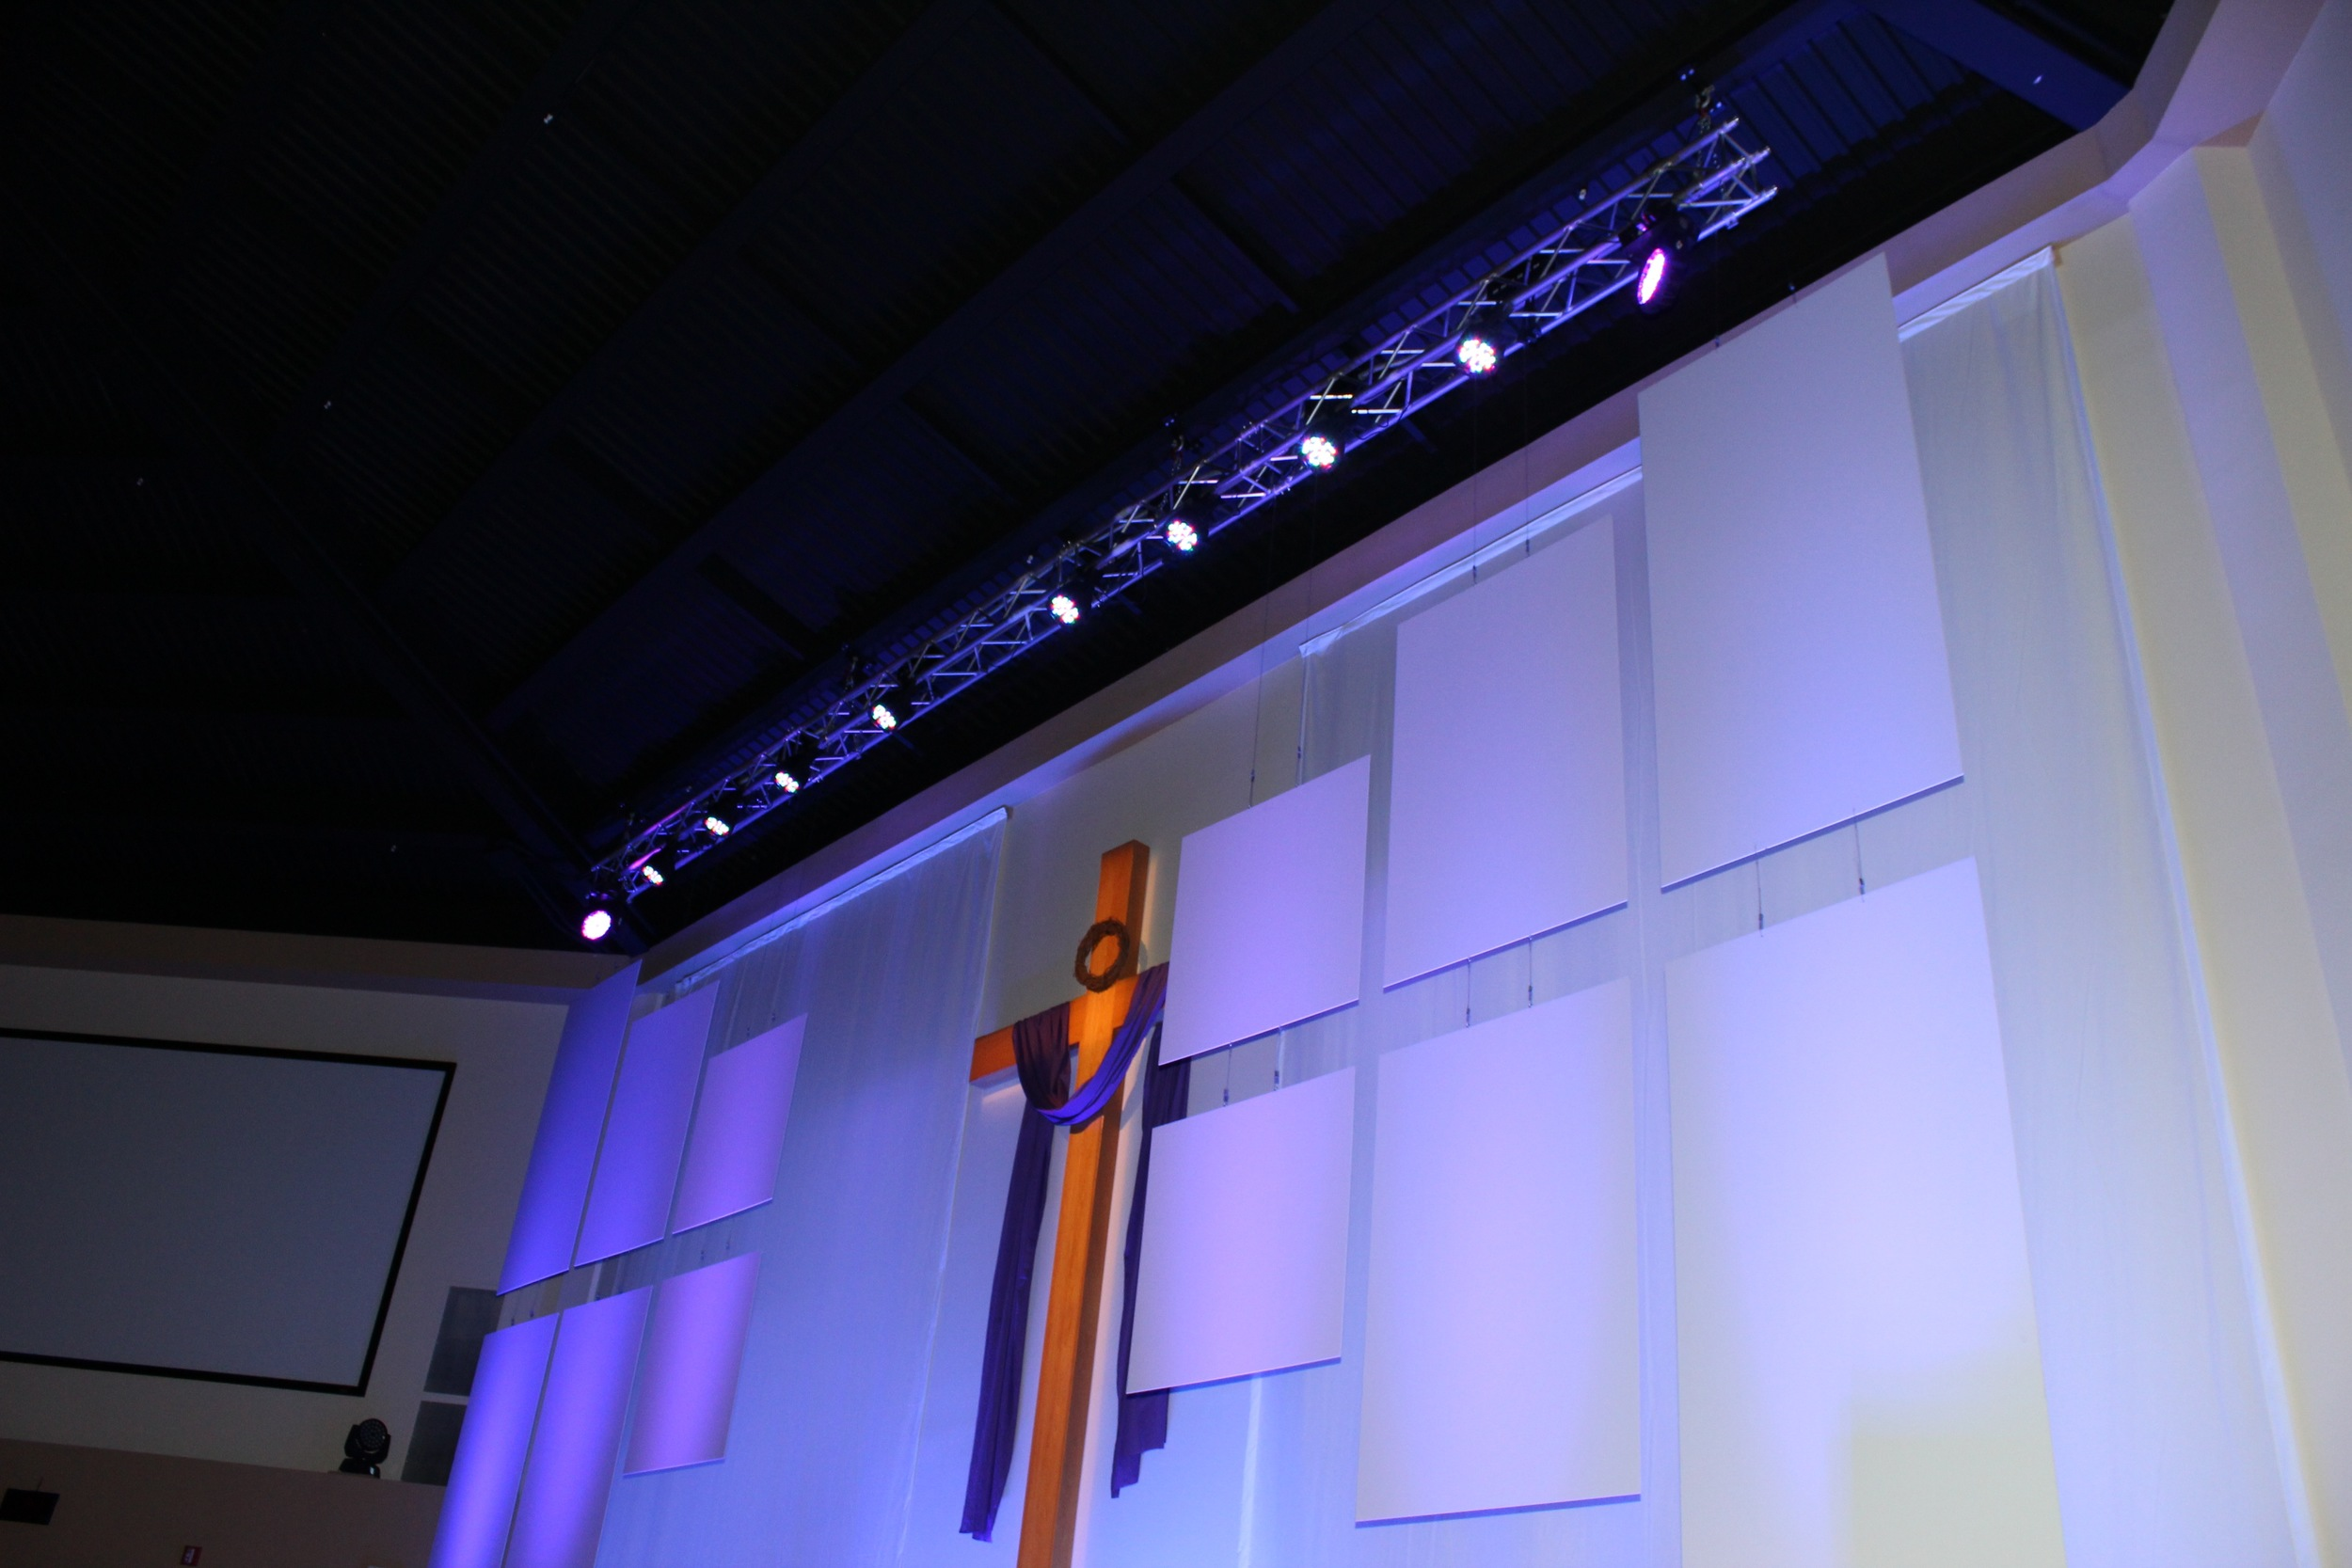 Chesapeake_Christian_Fellowship_Church_28.jpg